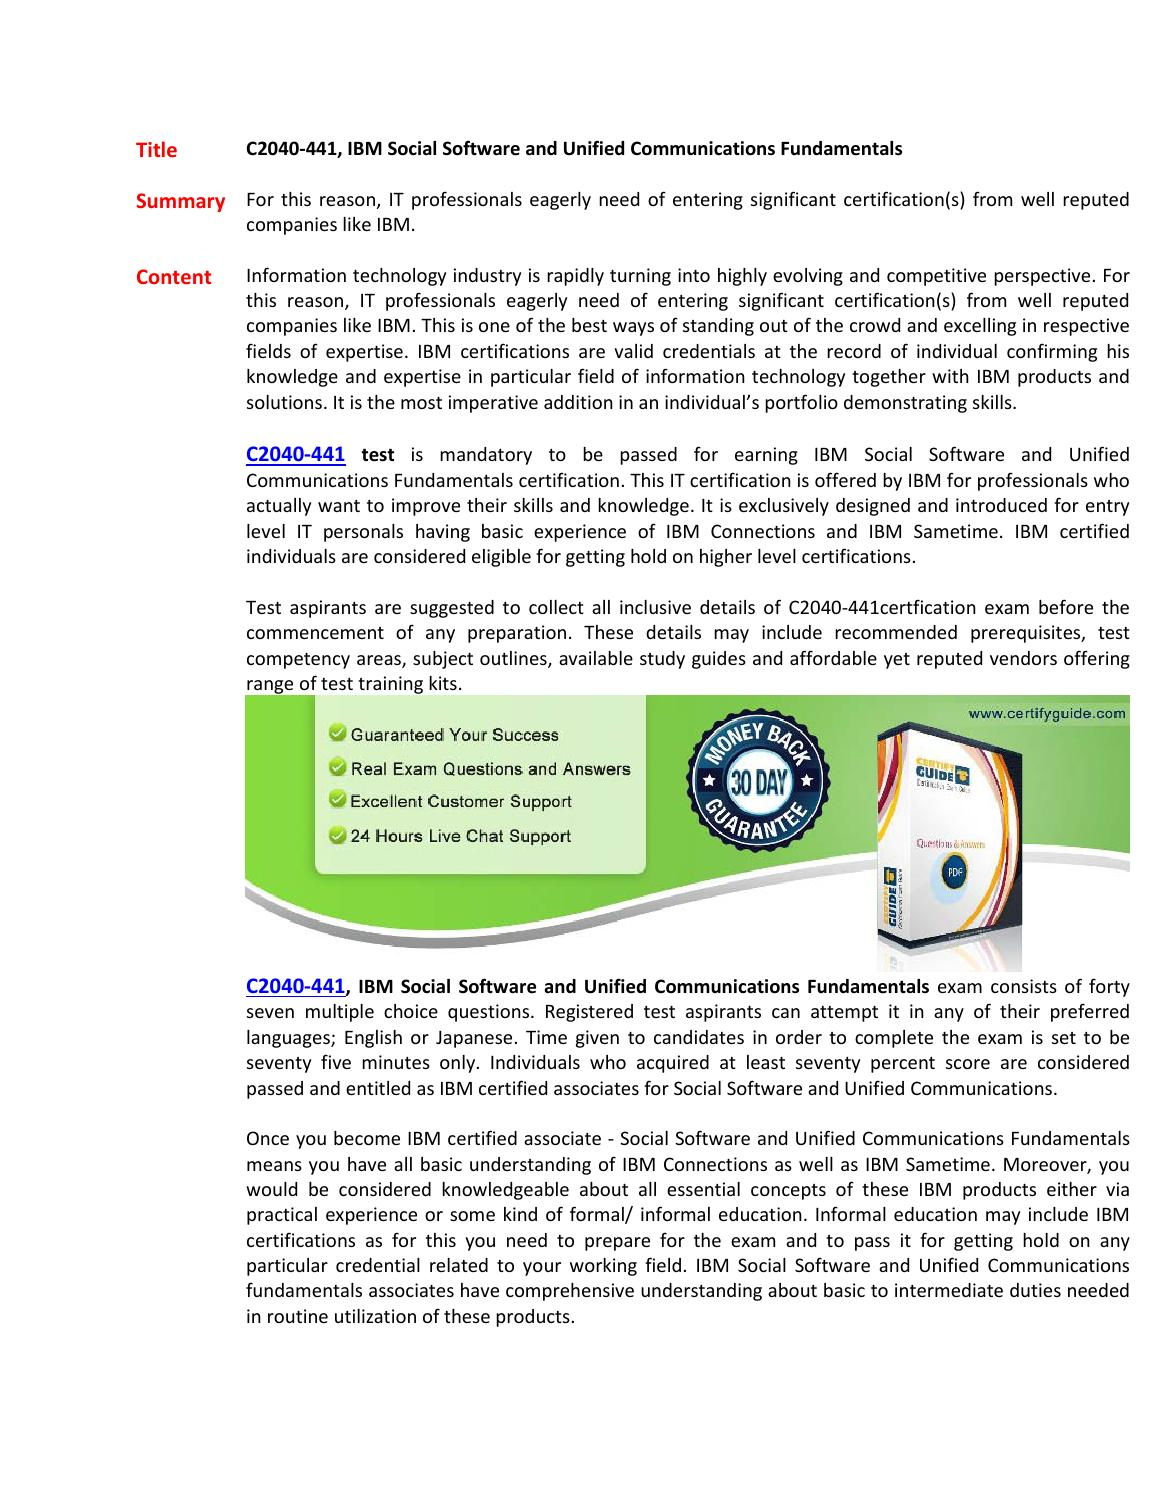 C2040 441 Certification Guides By Johncornor01 Issuu